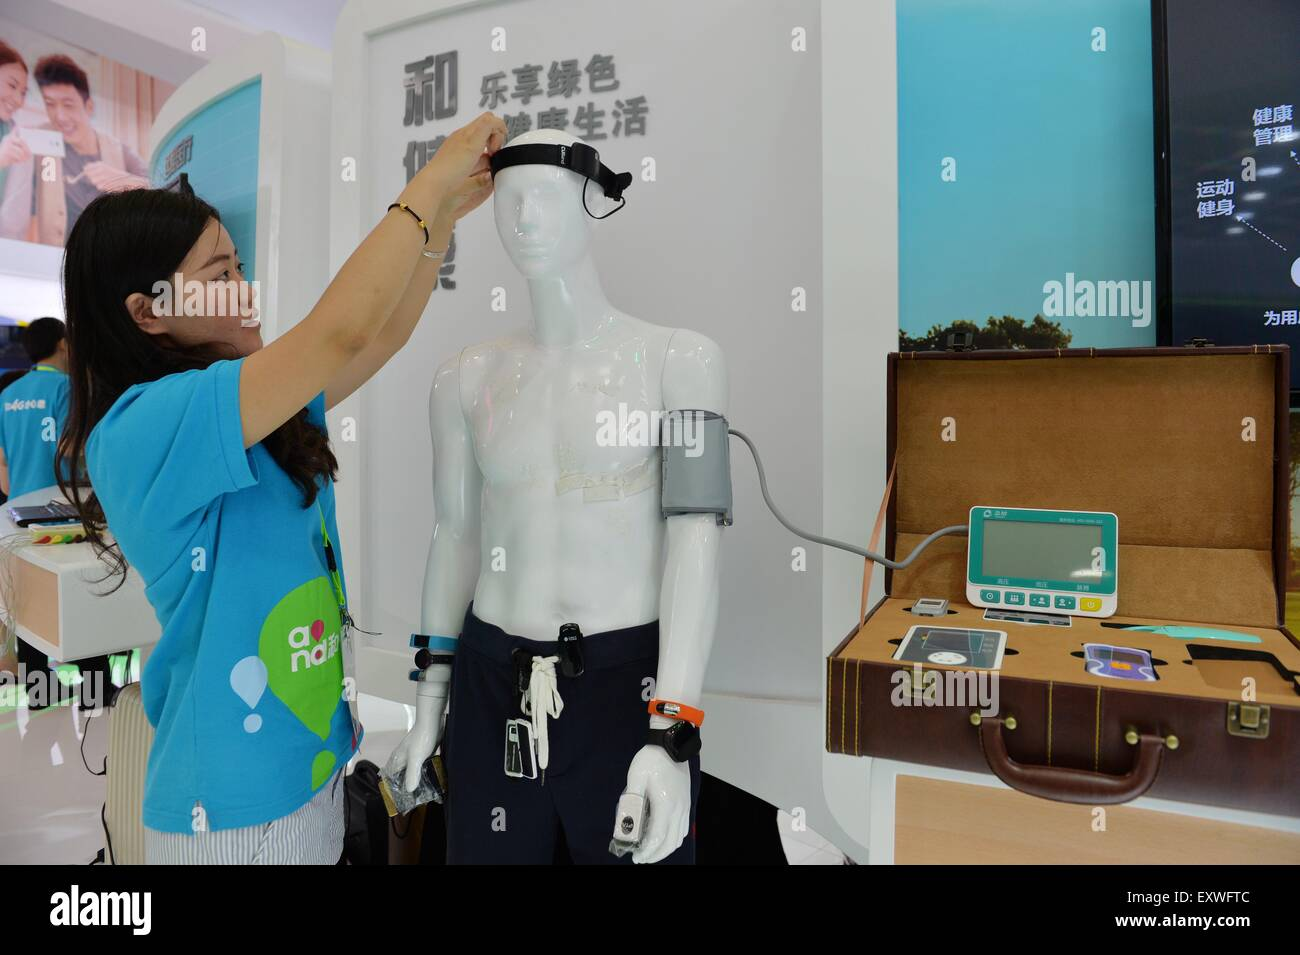 Shanghai, China. 17th July, 2015. An exhibitor adjusts a brainwave instrument during the Mobile World Congress Shanghai Stock Photo